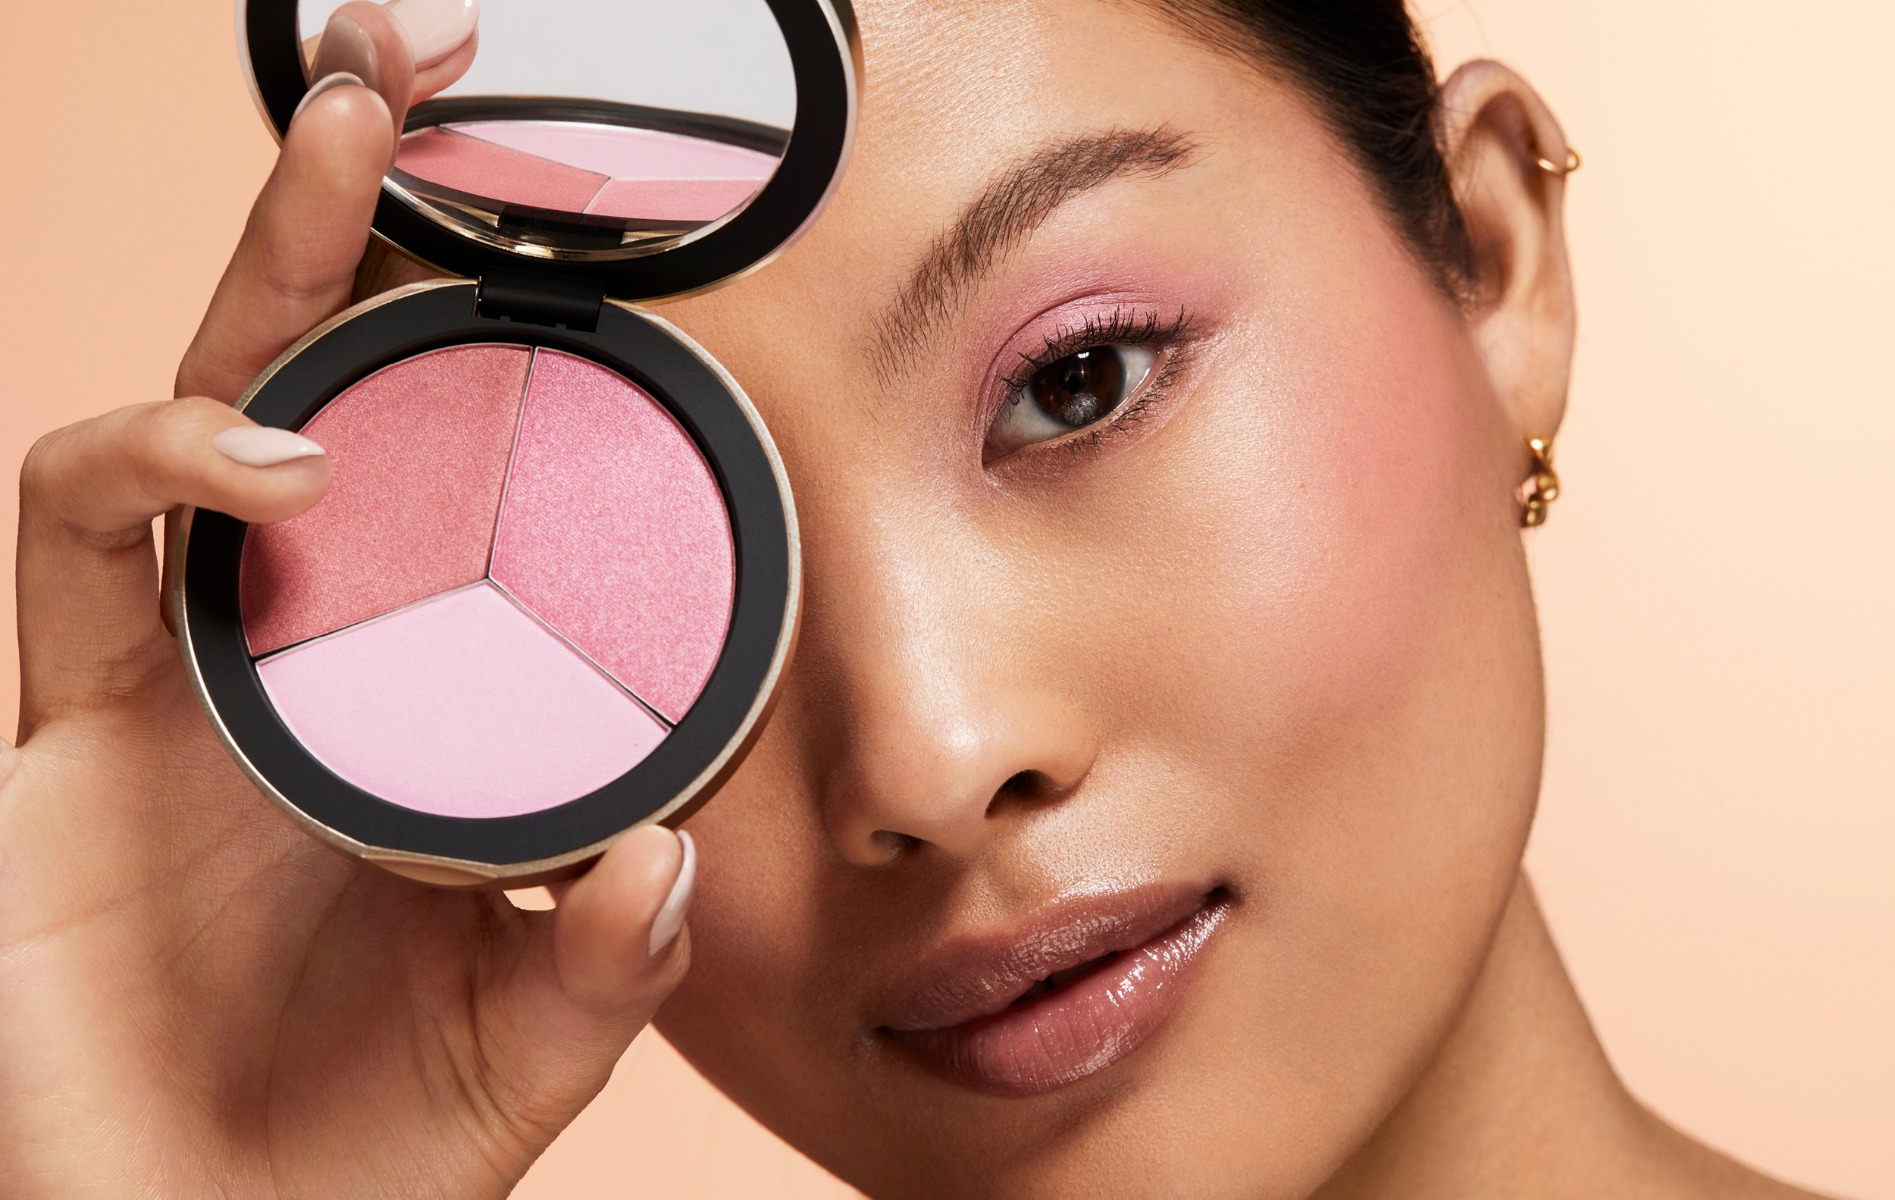 How To Use The Code8 Blush Palette